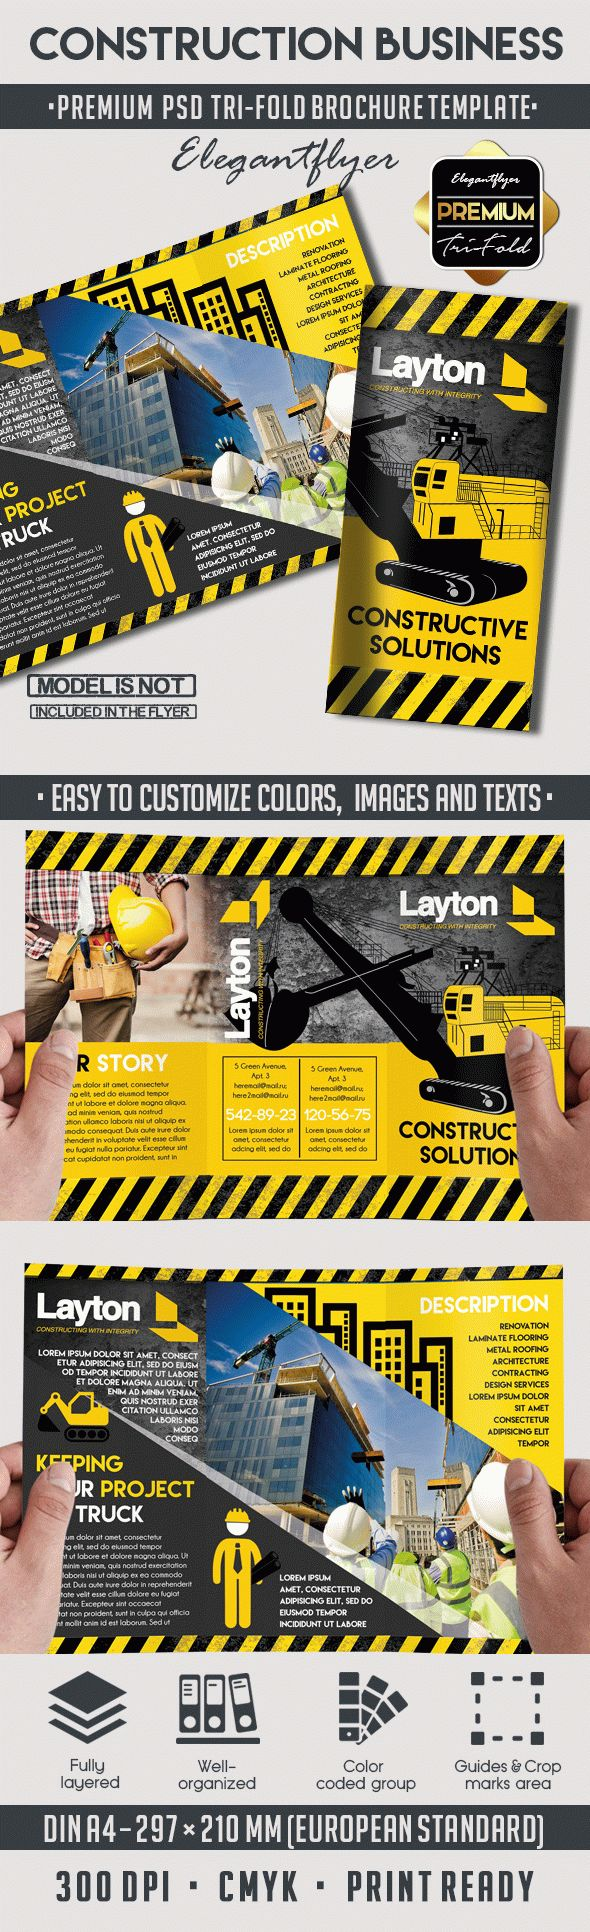 construction brochure template - tri fold brochure for construction business by elegantflyer